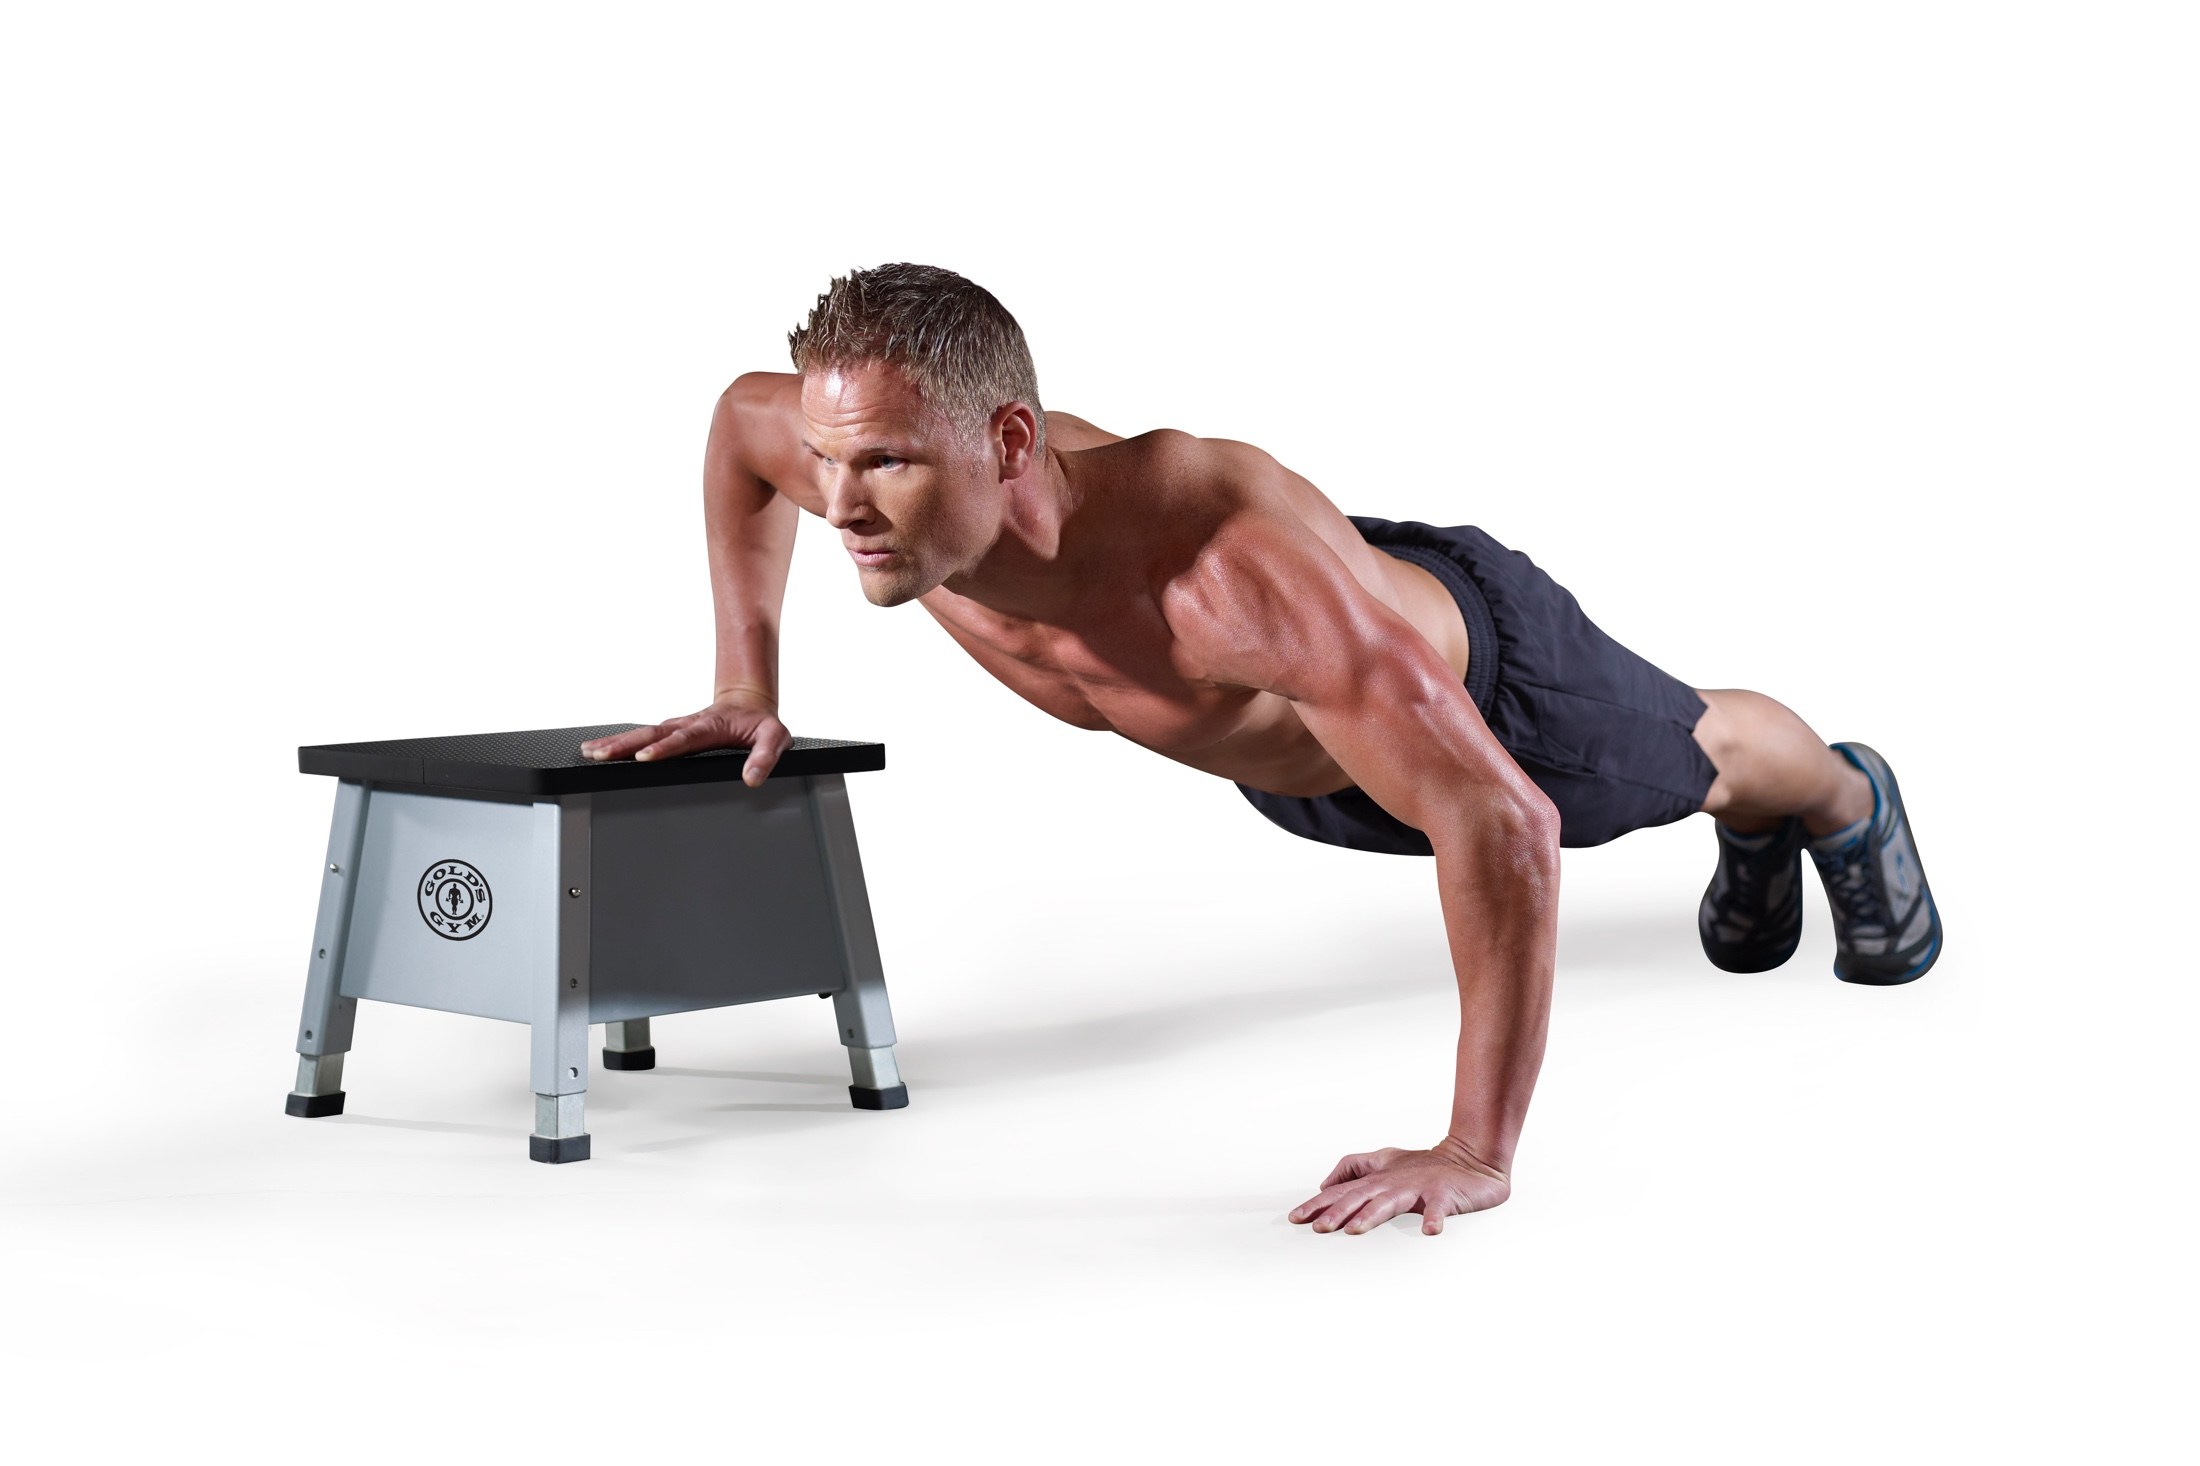 NordicTrack Gold's Gym Adjustable Plyometric Jump Box gallery image 6